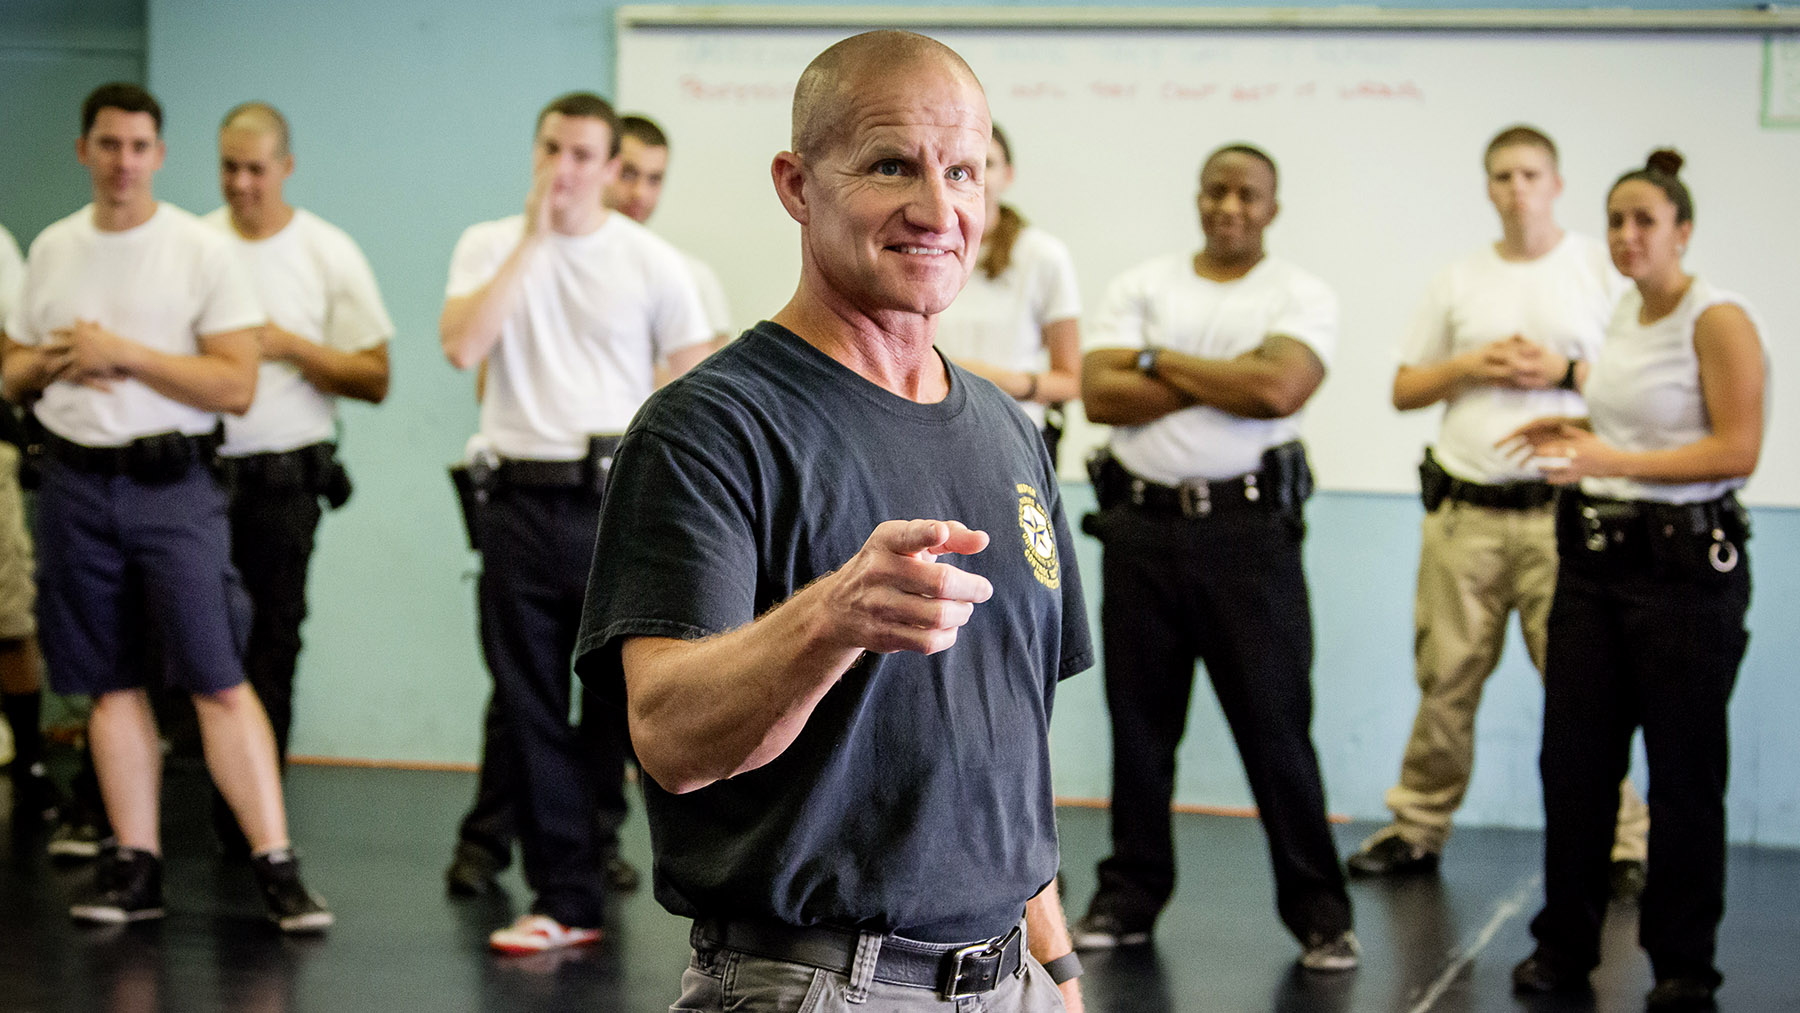 Police Training Institute director Dr. Mike Schlosser leads a class with young officers. Photo by L. B. Stauffer